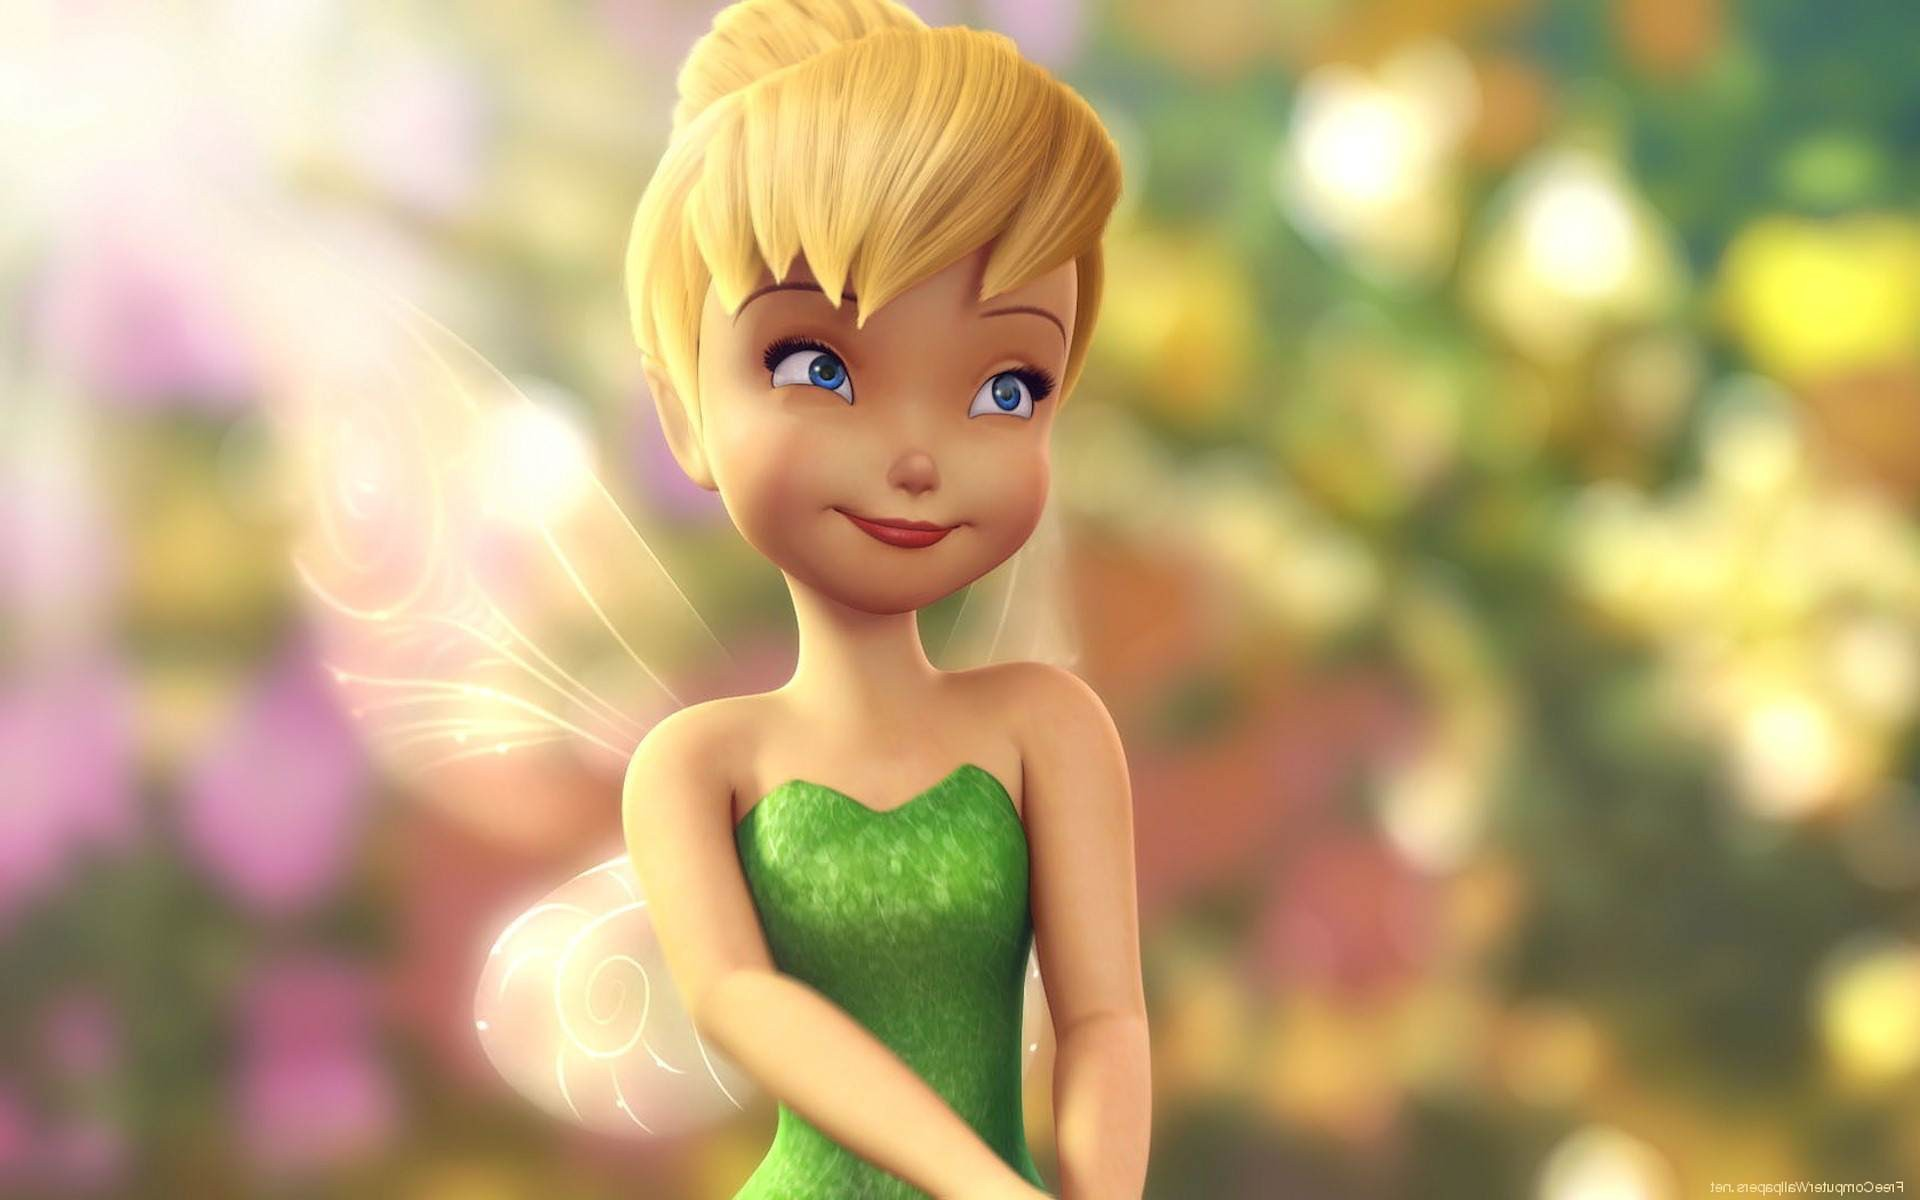 1920x1200 Image - Cute-tinkerbell-wallpapers-desktop-backgrounds.jpg | The Parody  Wiki | FANDOM powered by Wikia